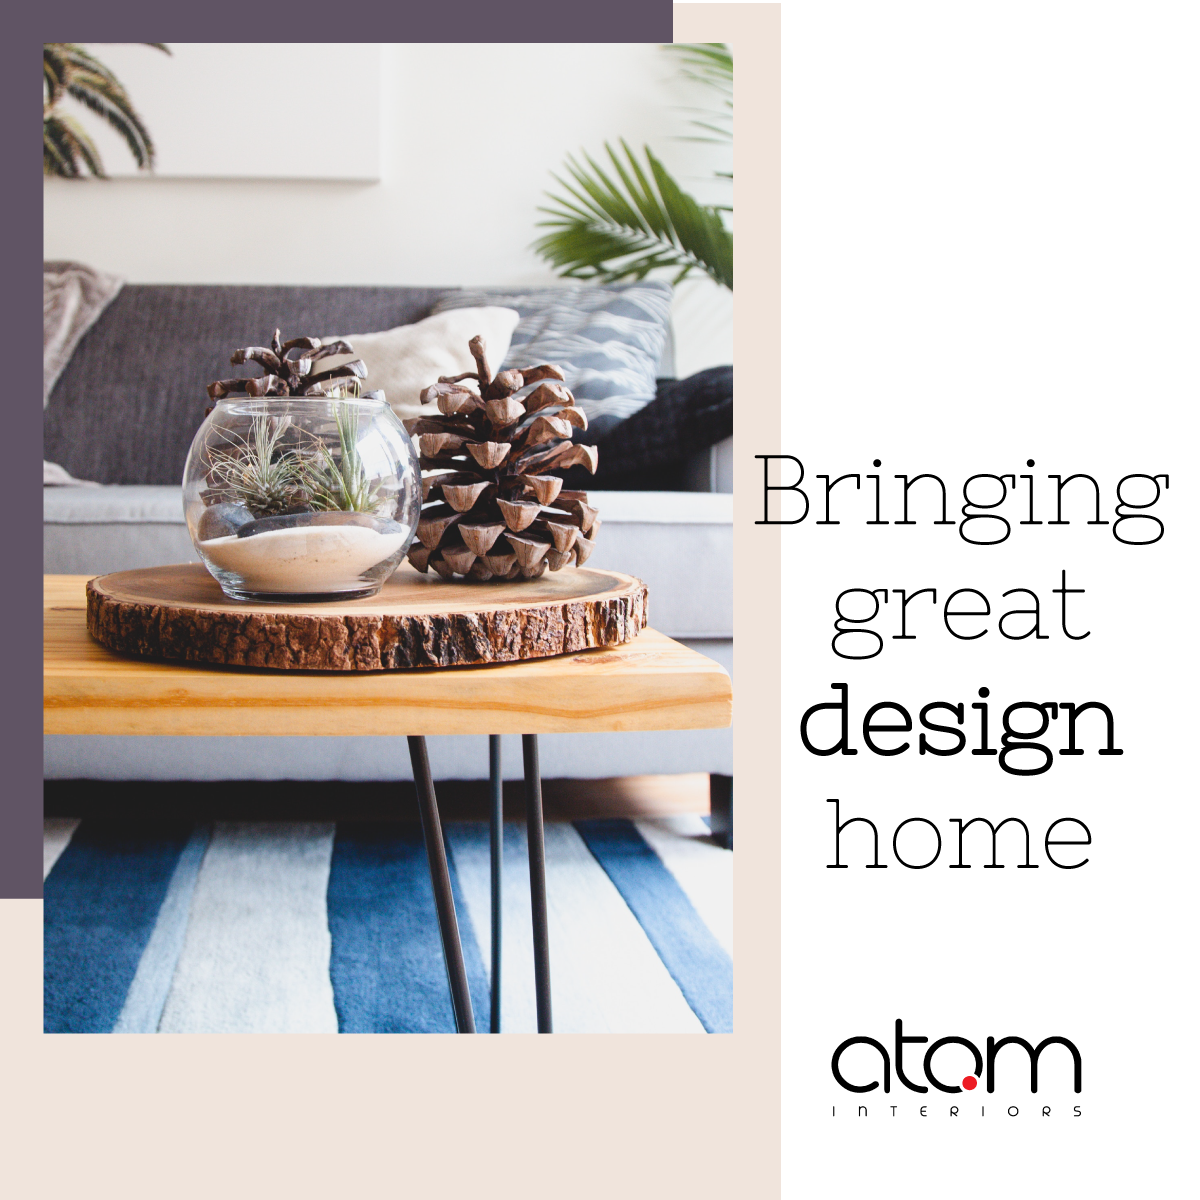 Home Design Ideas Bangalore: Pin By Atom Interiors, Bangalore On Home Interiors